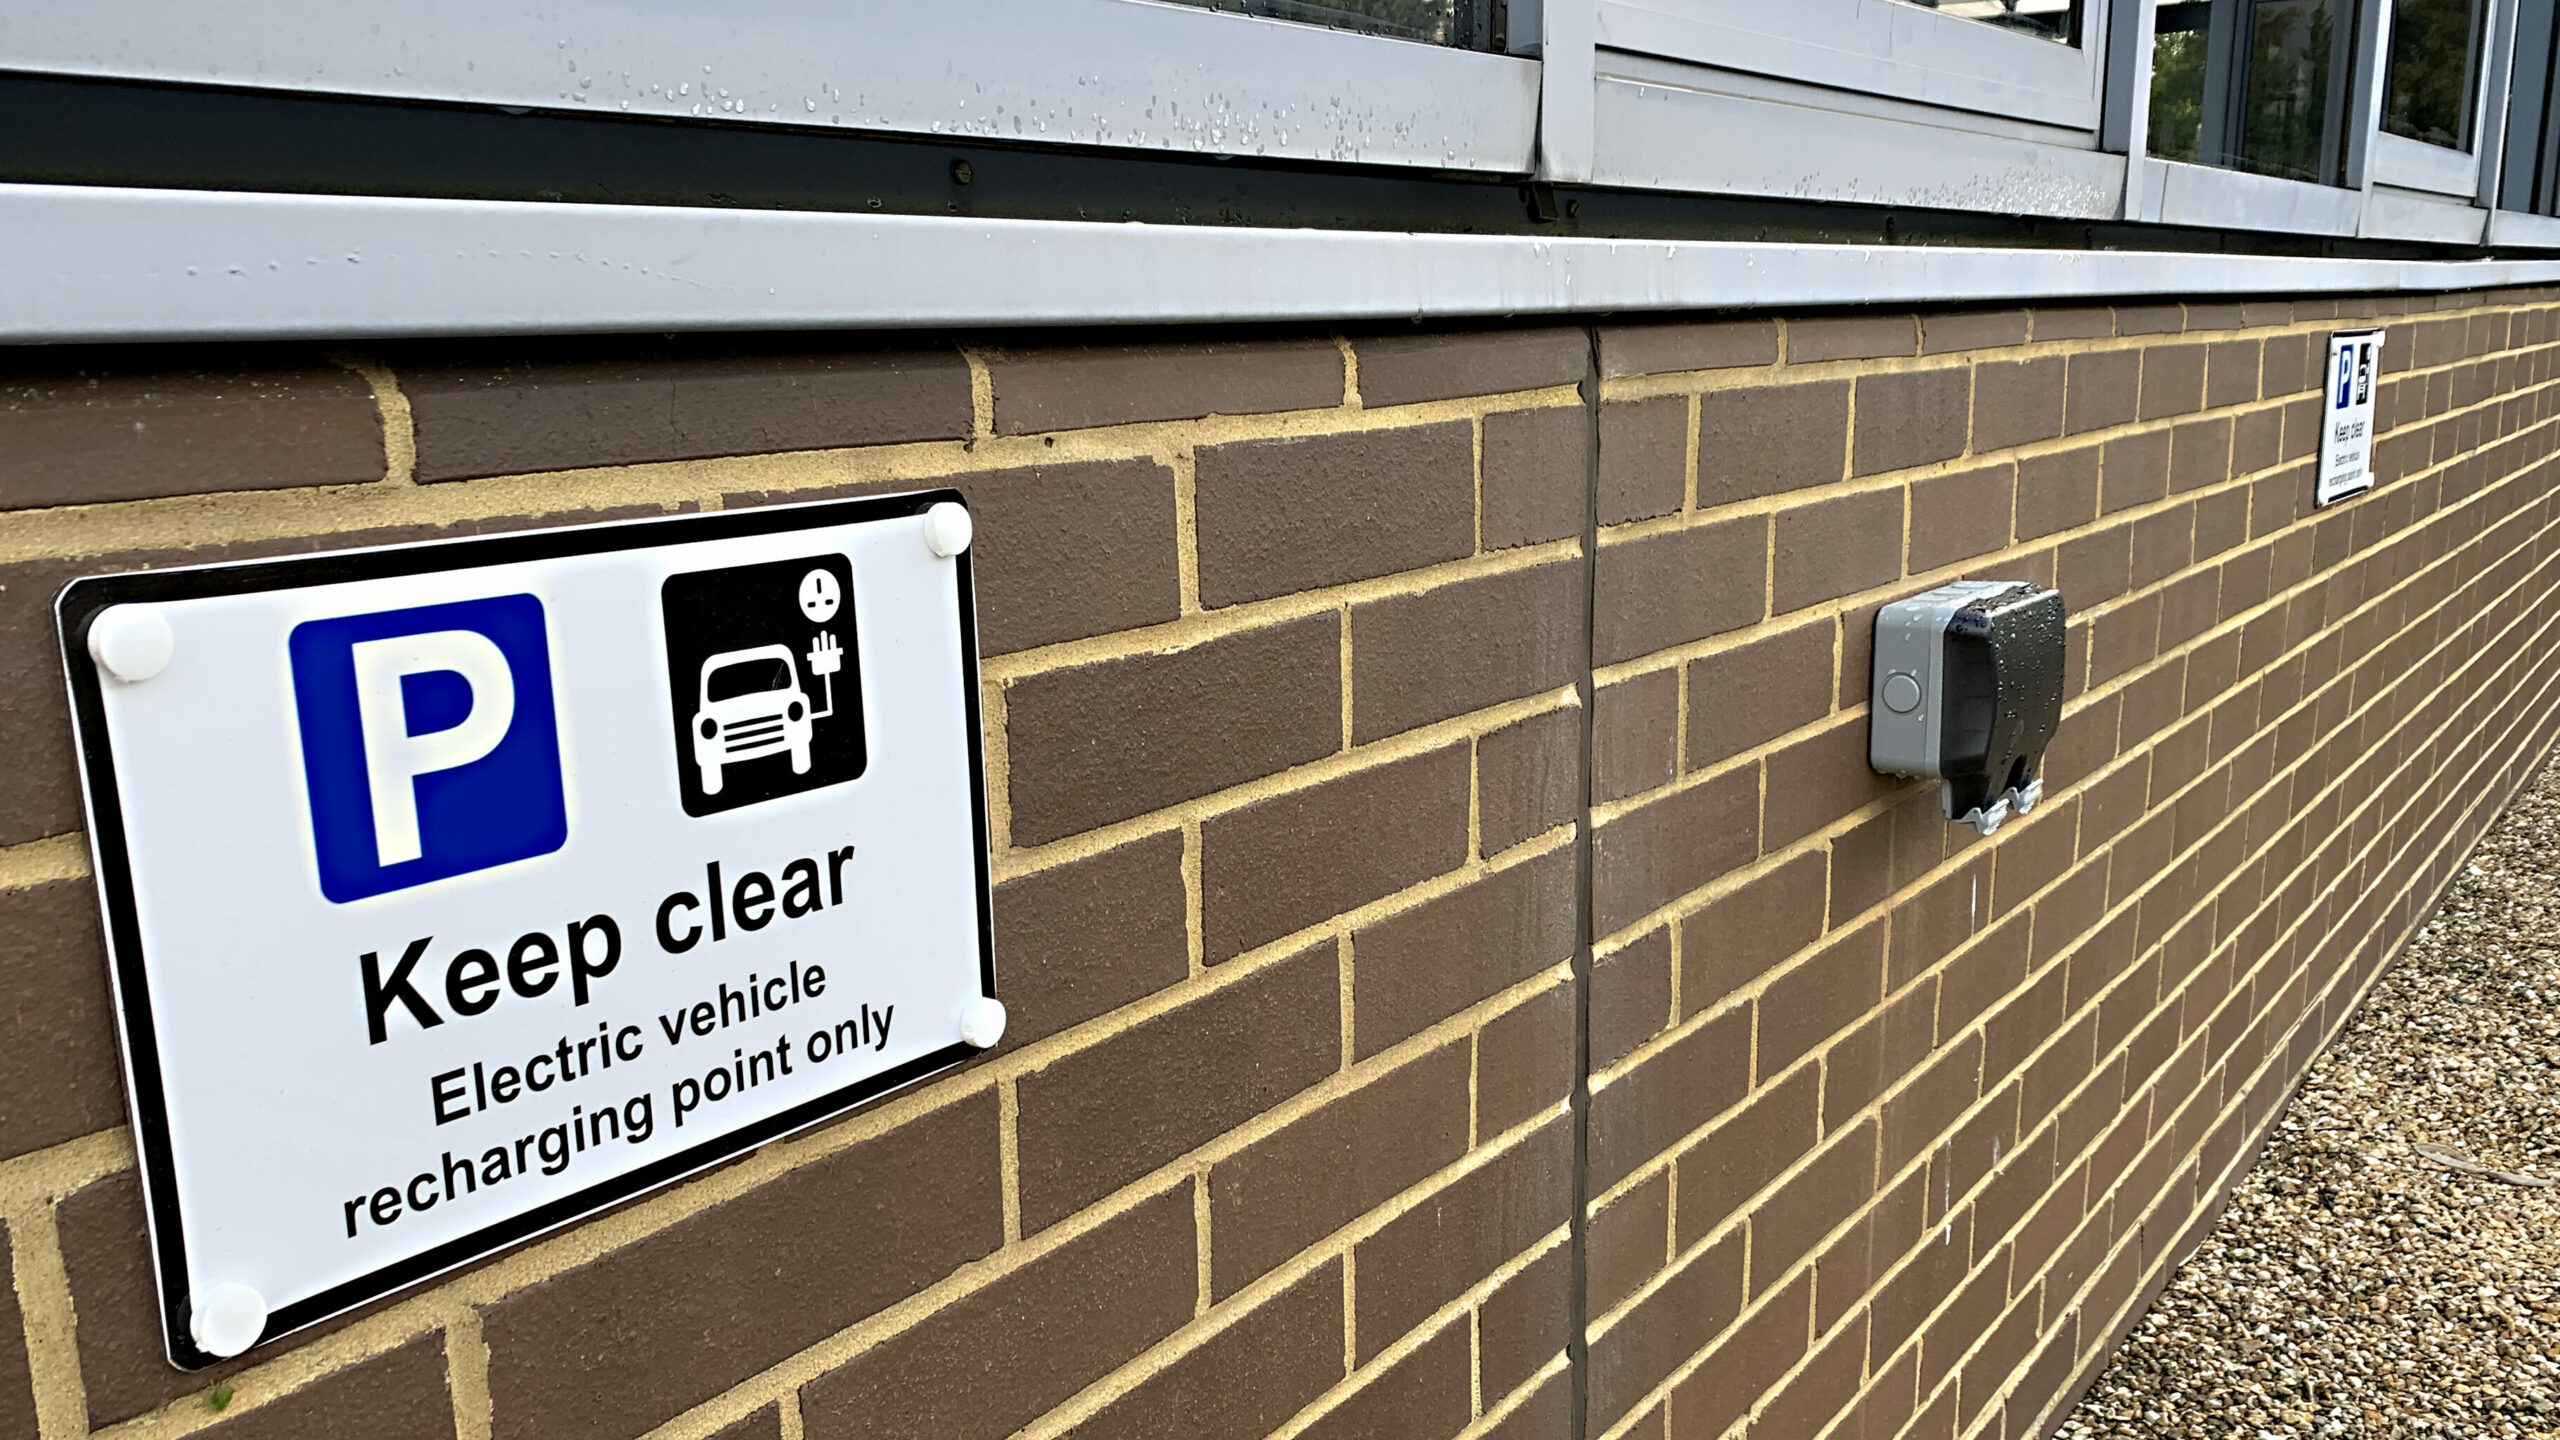 Electric Vehicle Recharging Points at Pitacs Limited, Milton Keynes